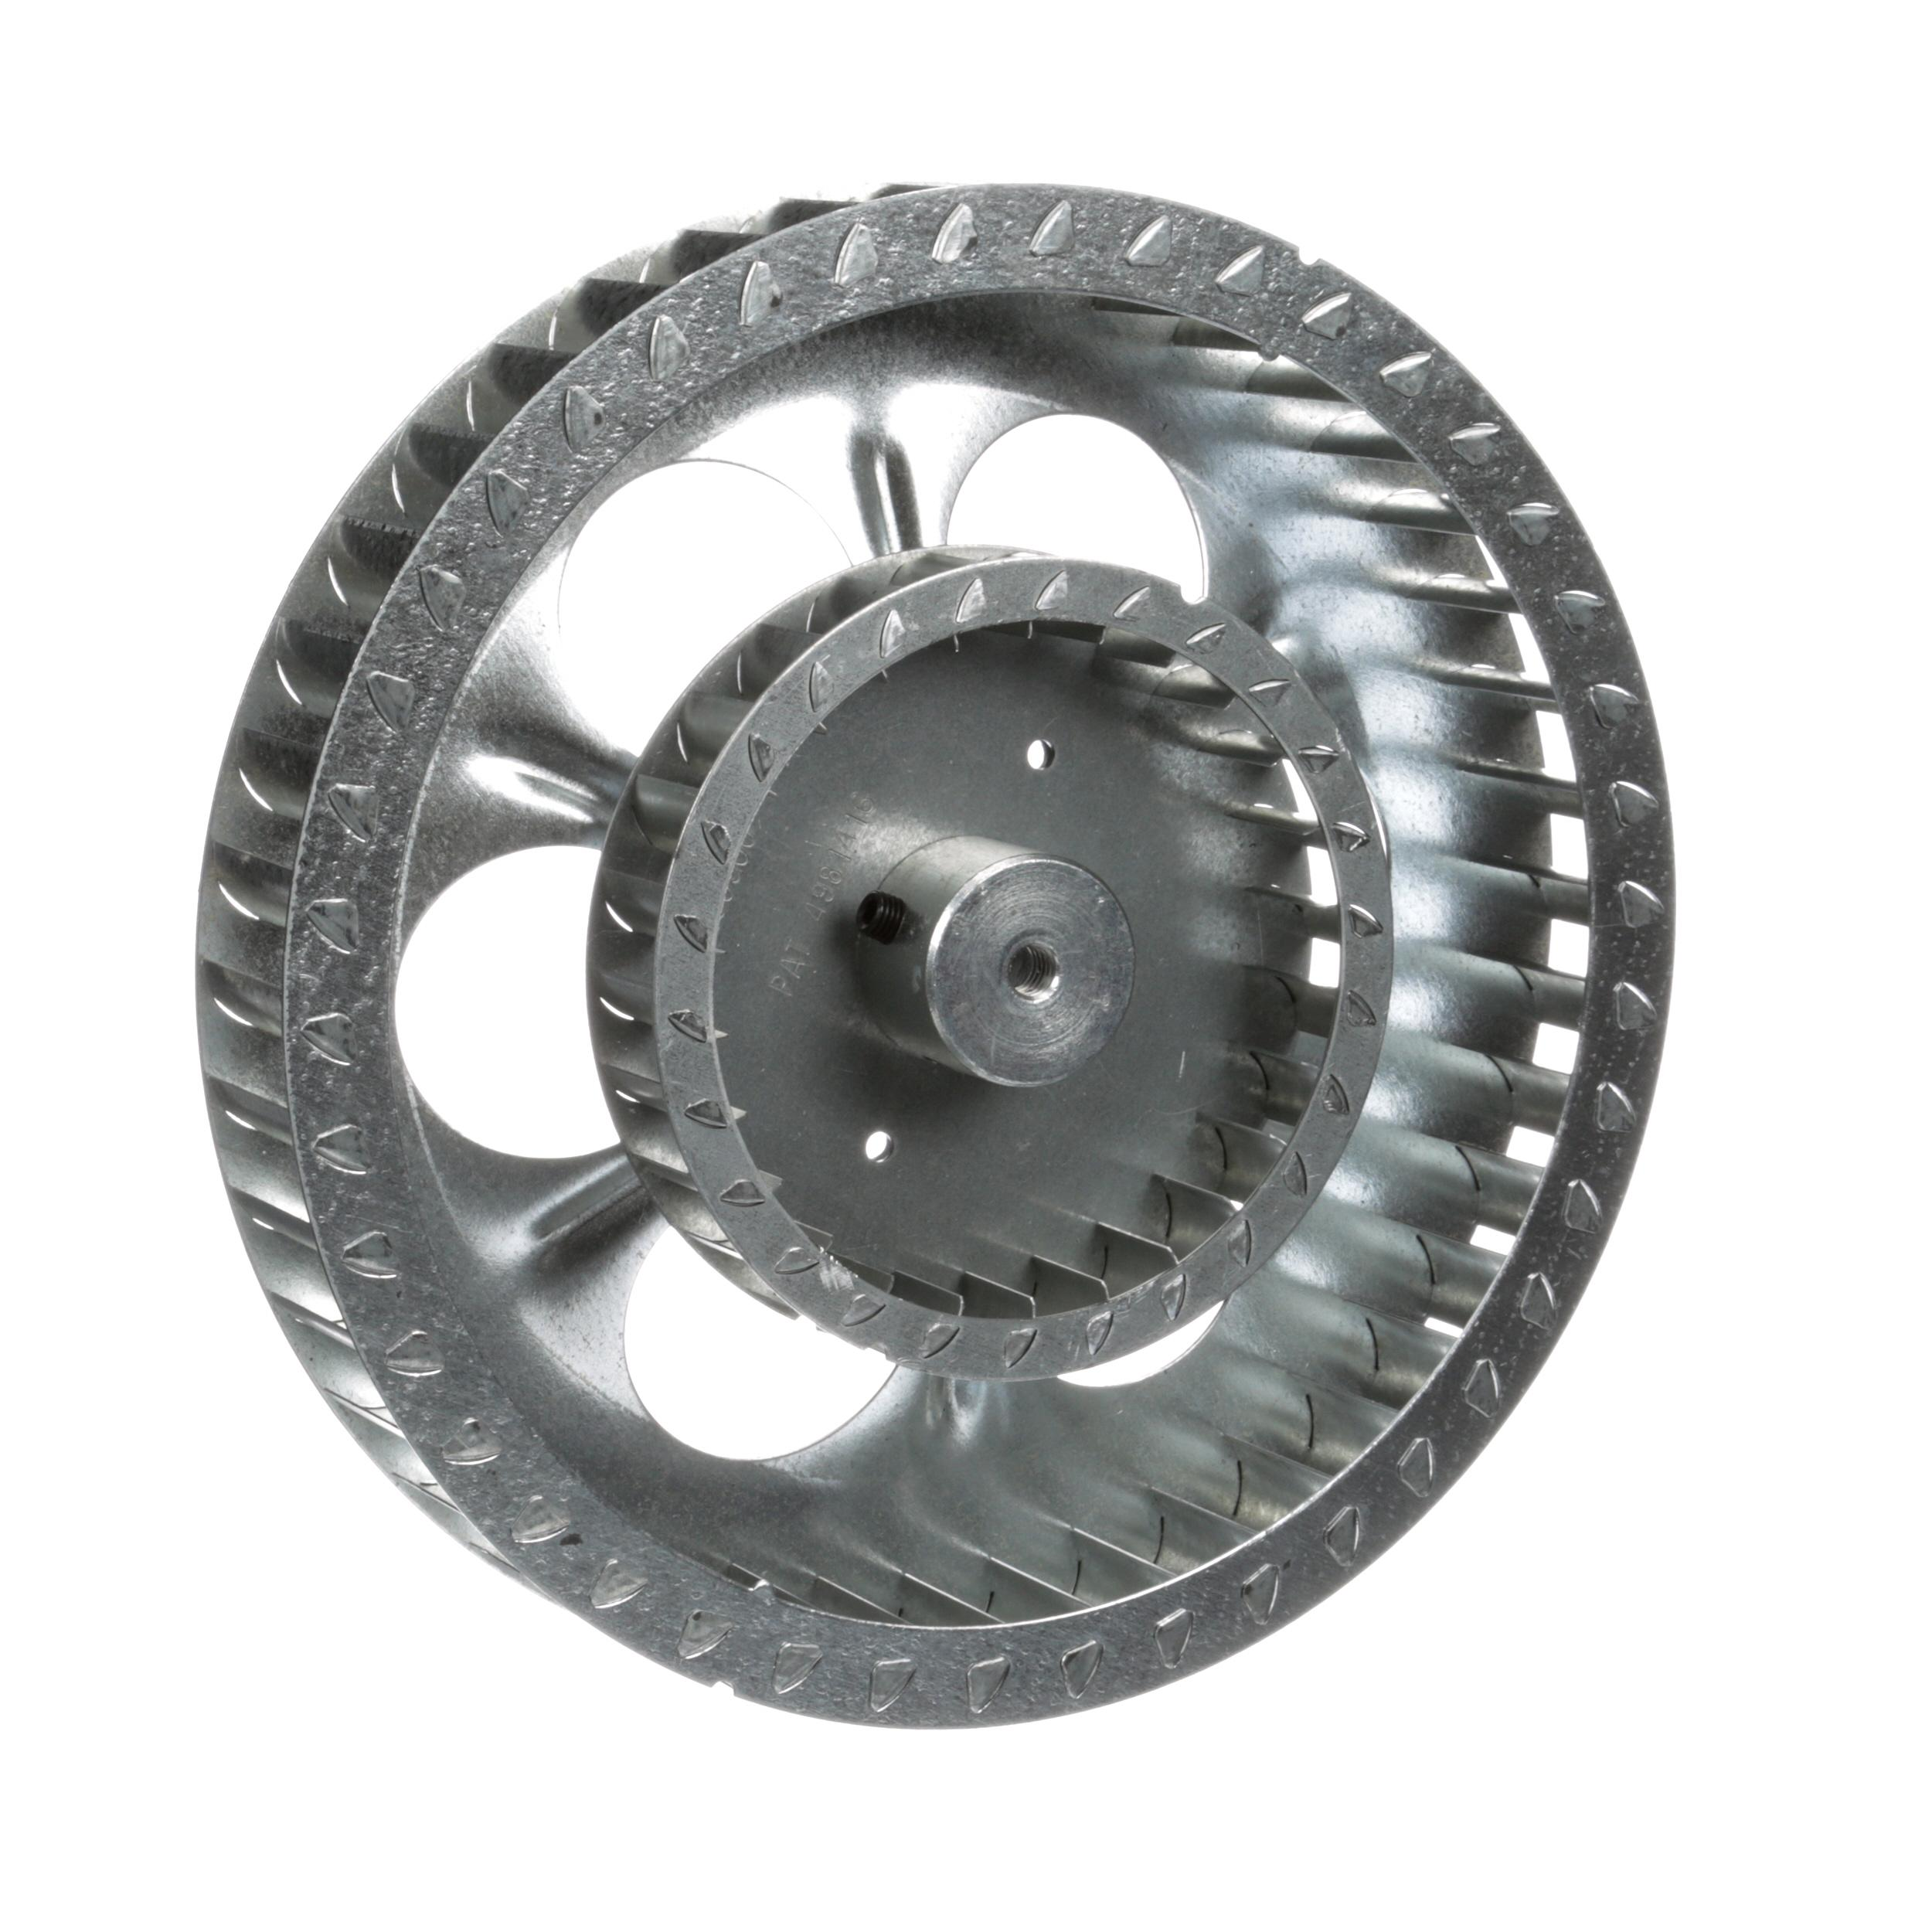 BAKERS PRIDE BLOWER WHEEL